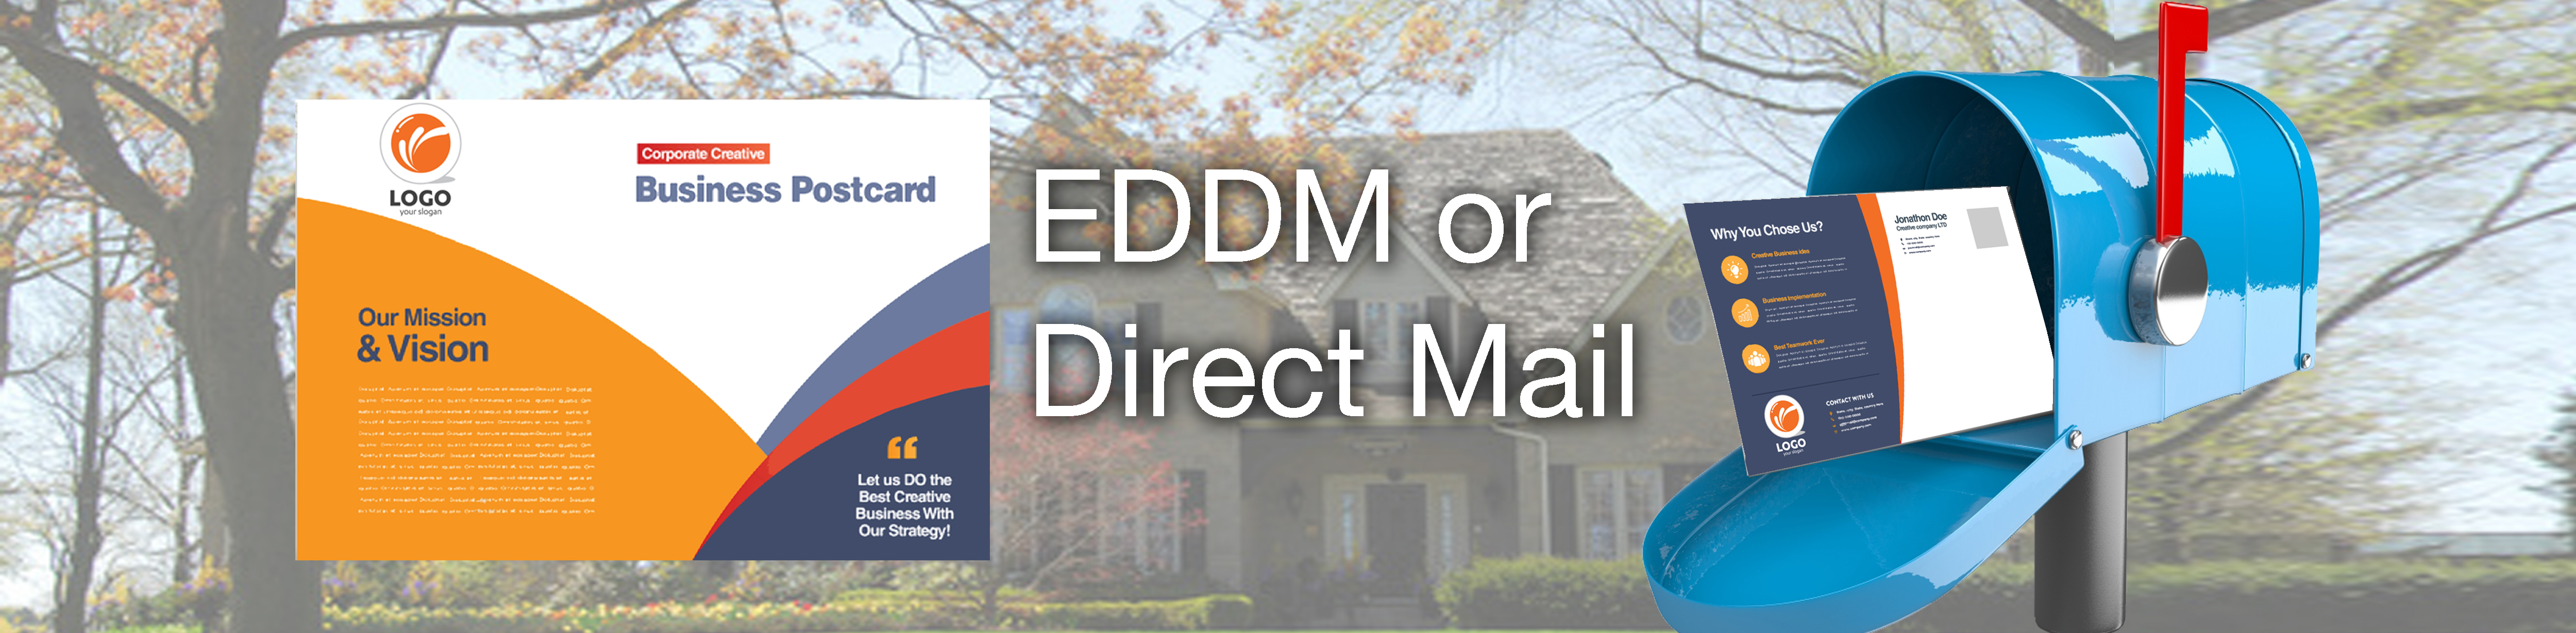 Have You Ever Considered EDDM or Direct Mail to Market Your Event or Business?